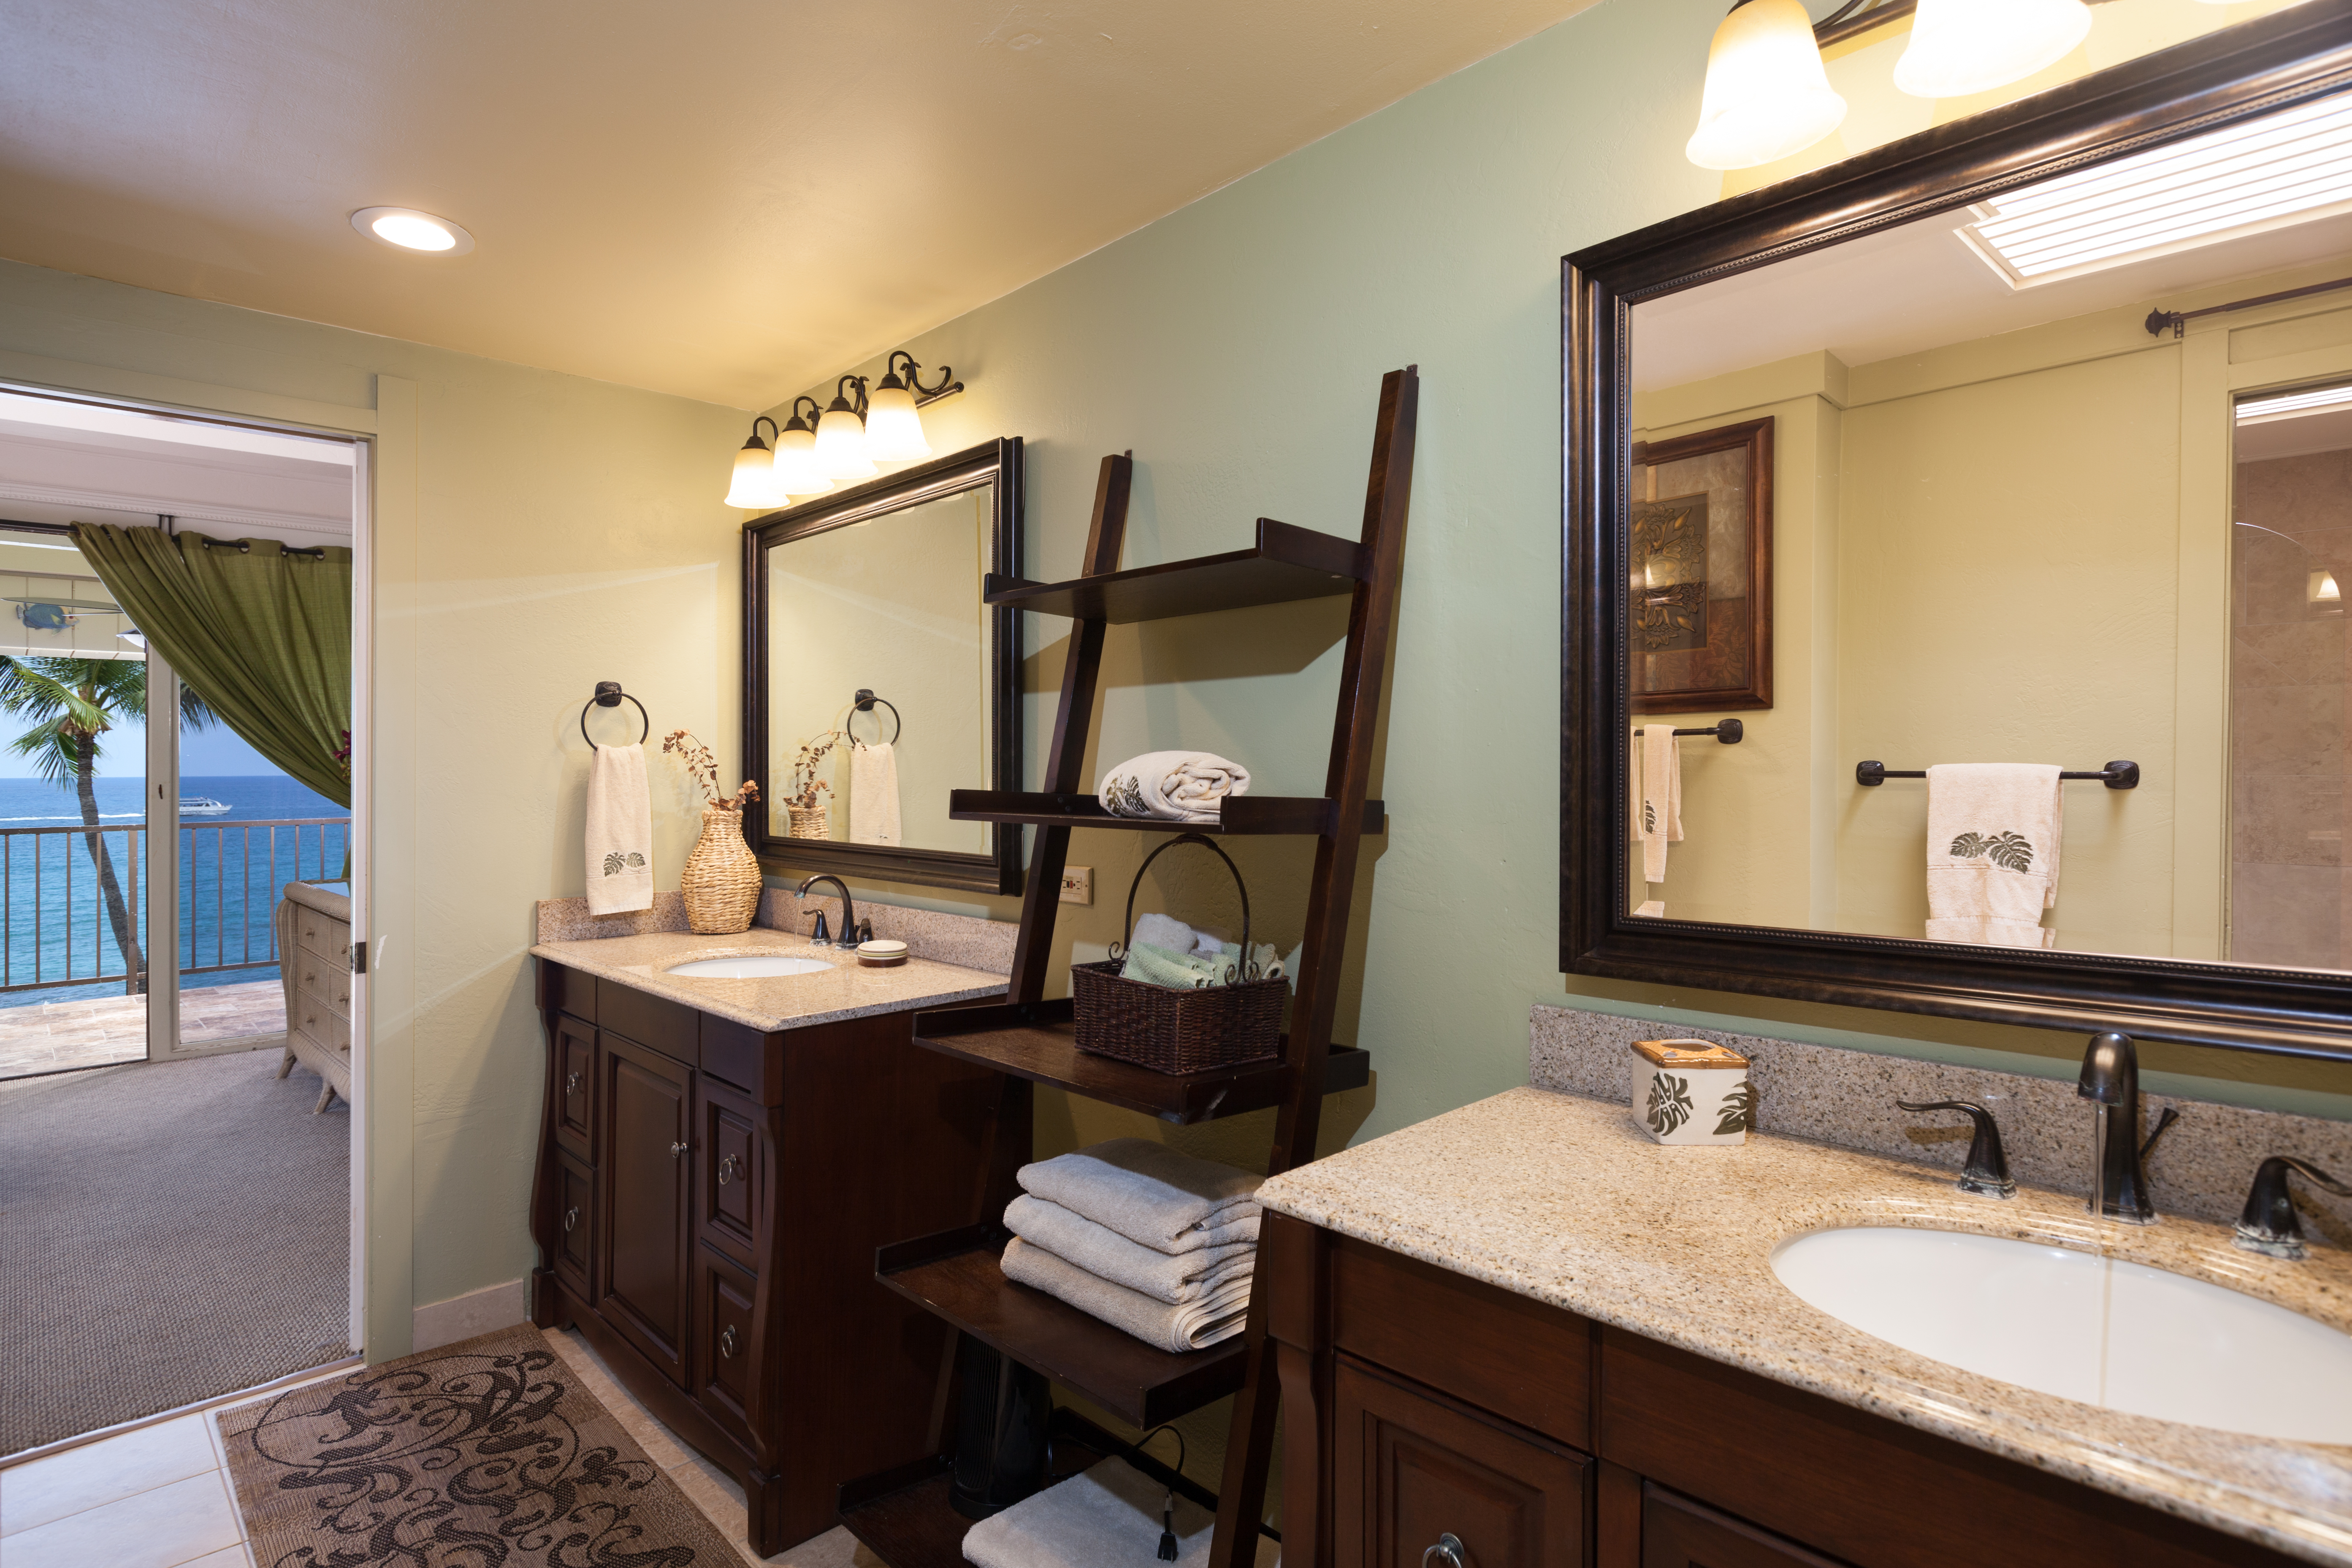 Oceanfront king master ensuite bathroom with walk in shower.